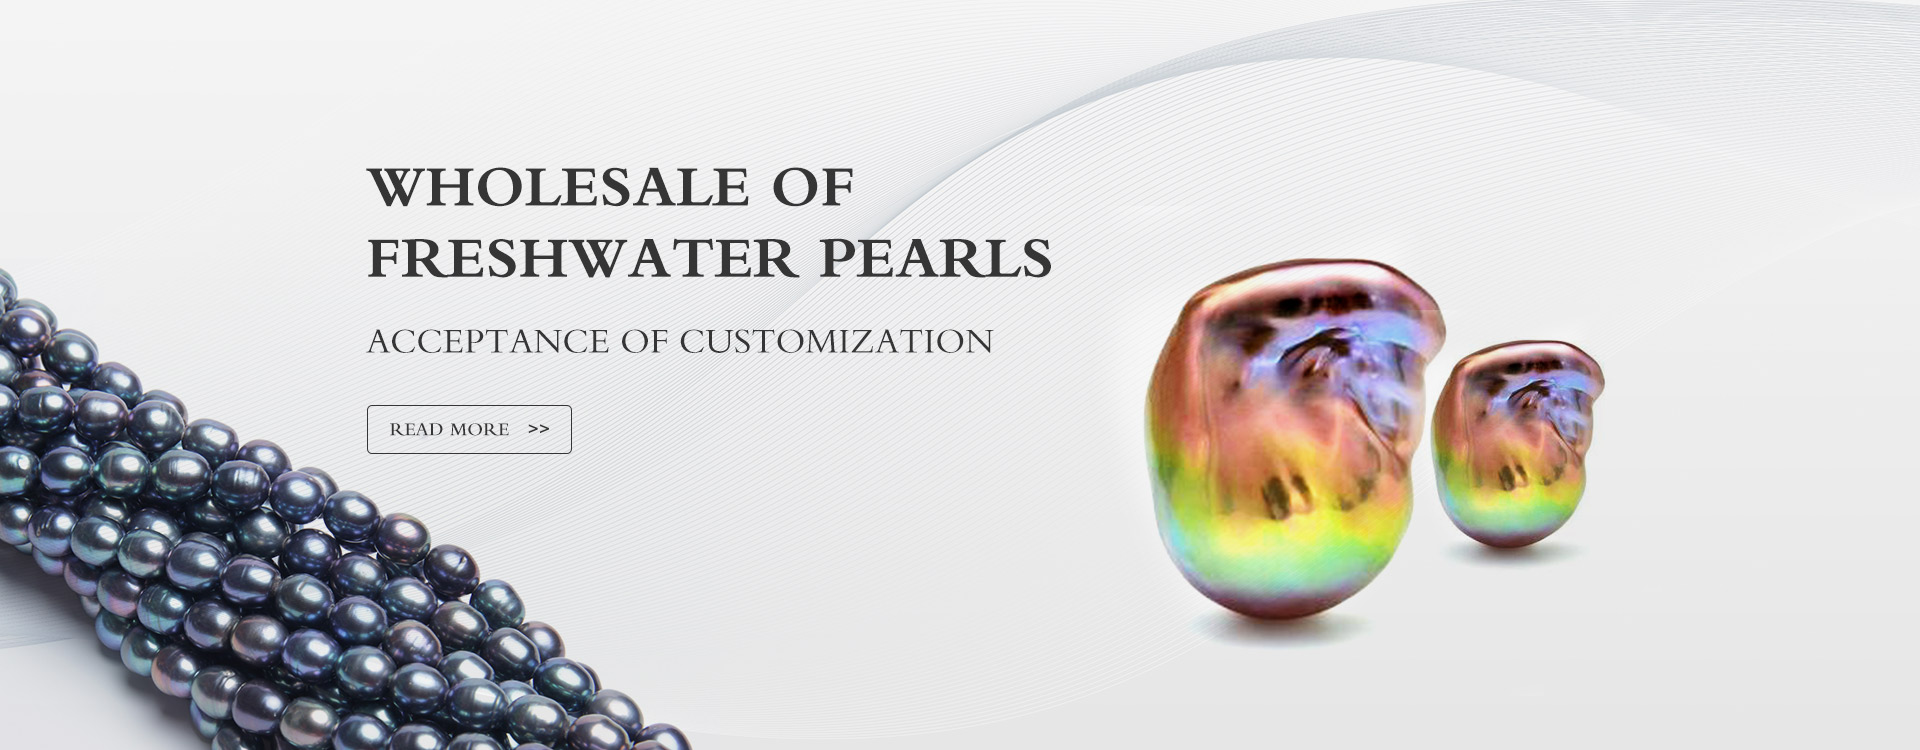 Wholesale of  Freshwater pearls